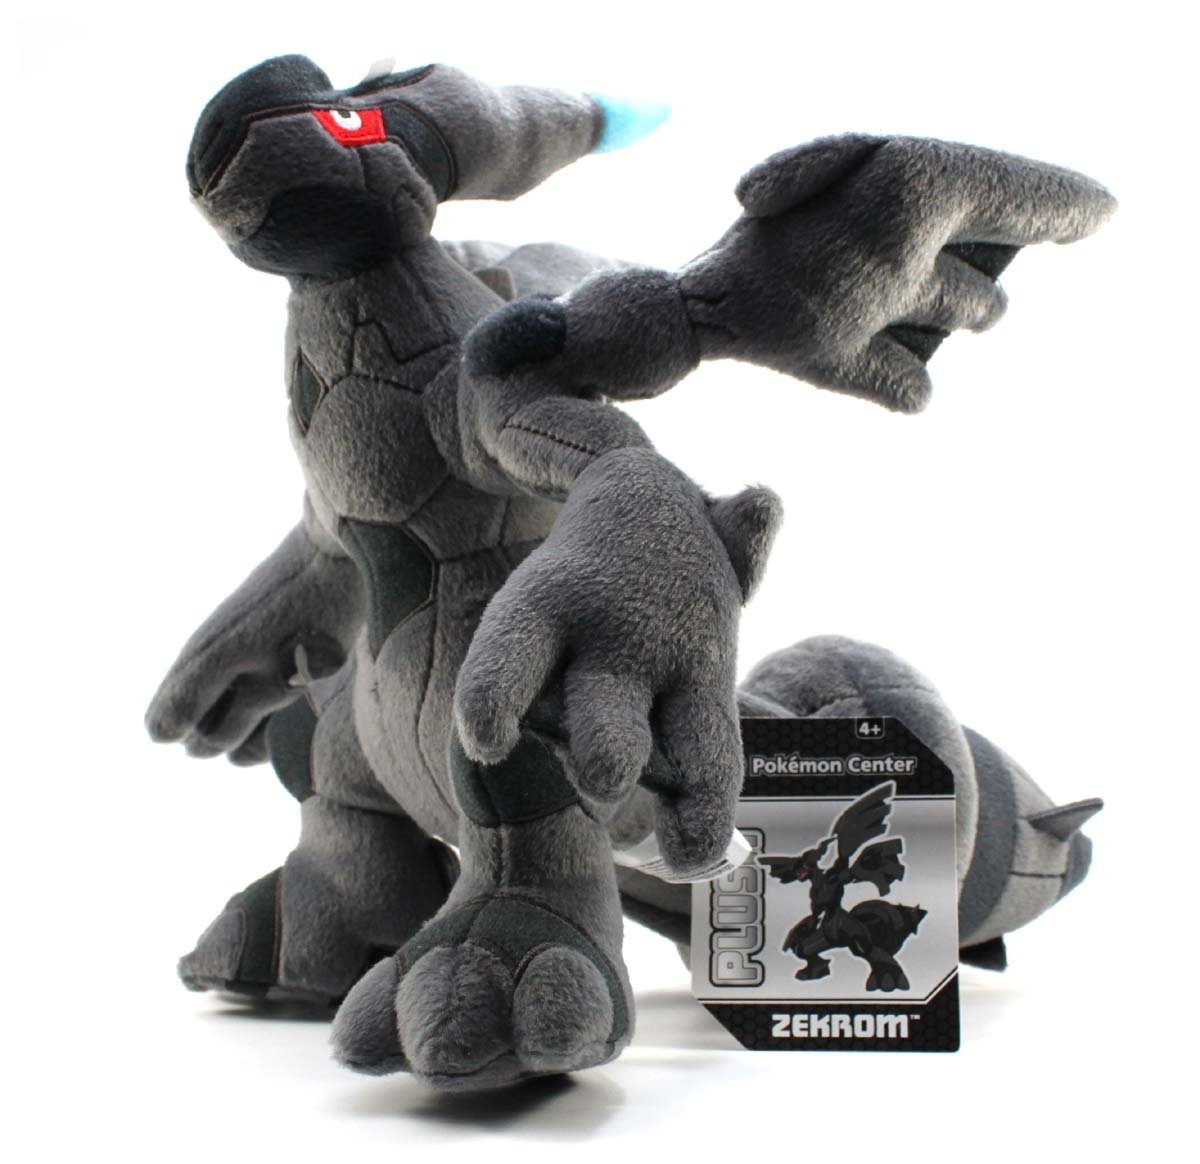 12''  Zekrom Pokemon Center Plush by Pokemon